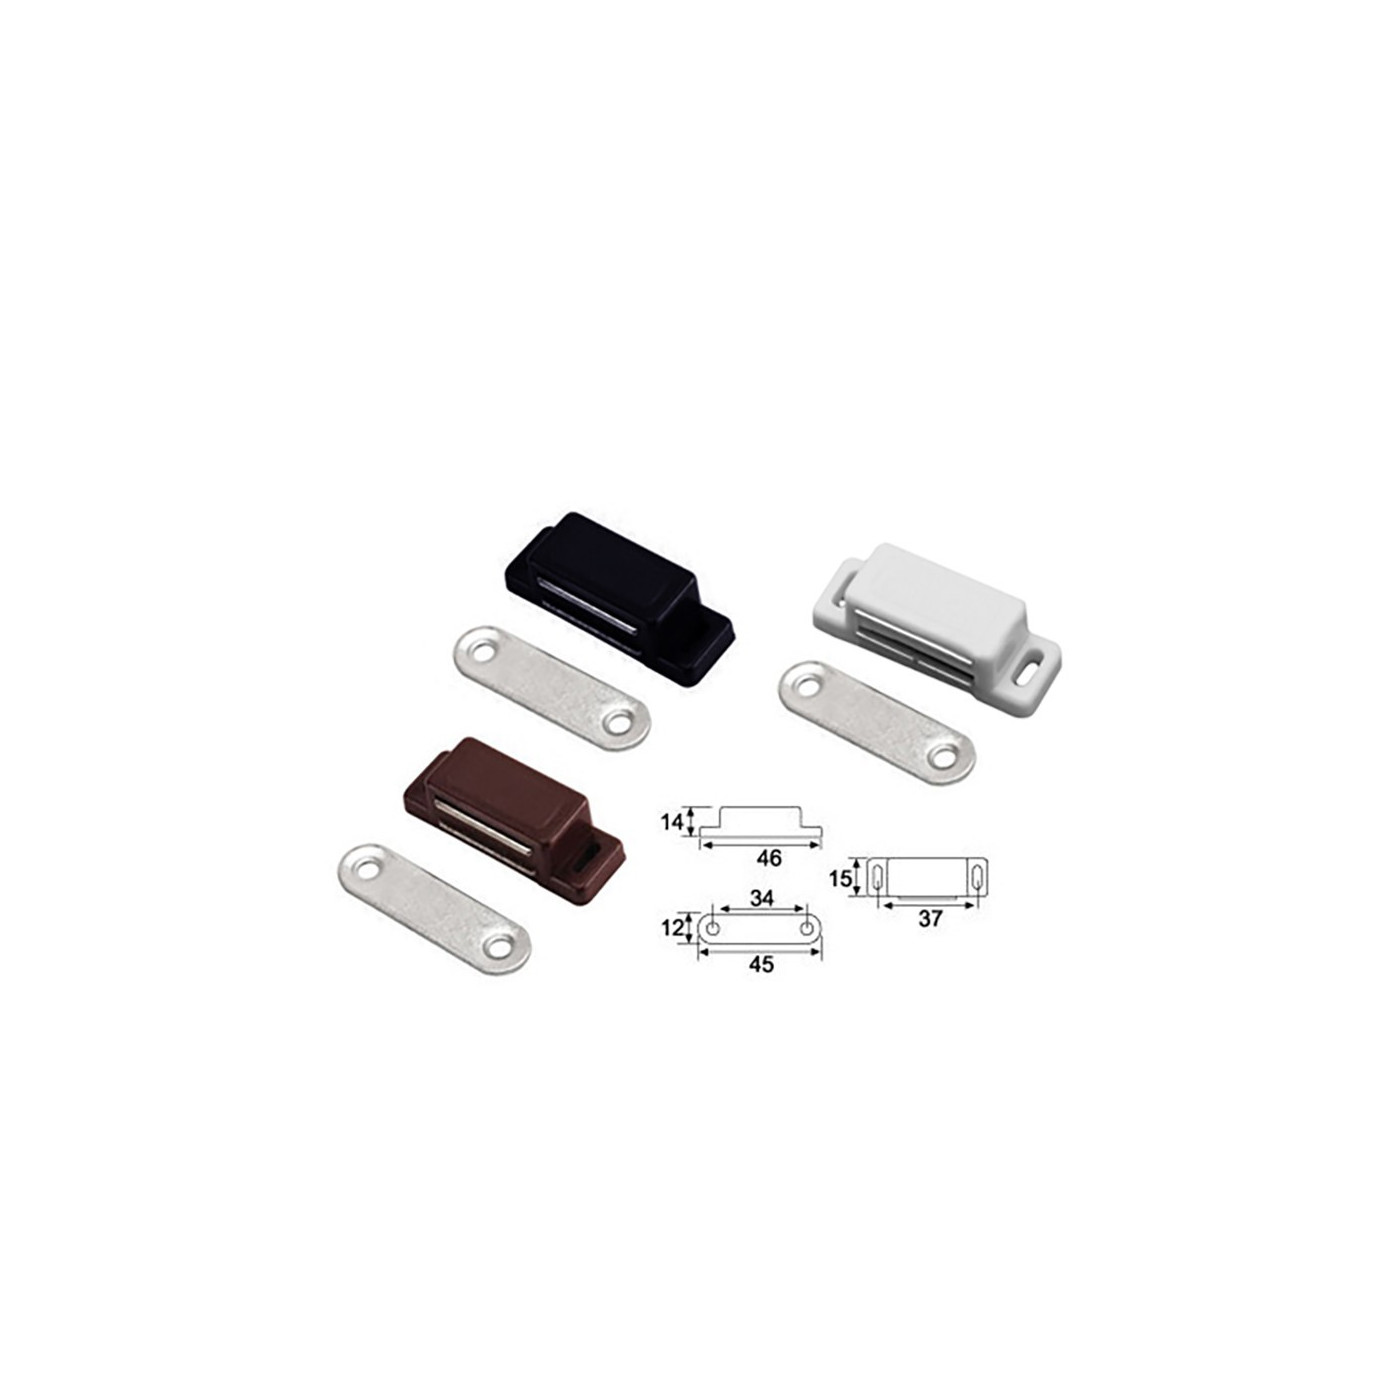 Set of 8 magnetic push to open cabinet catches: black